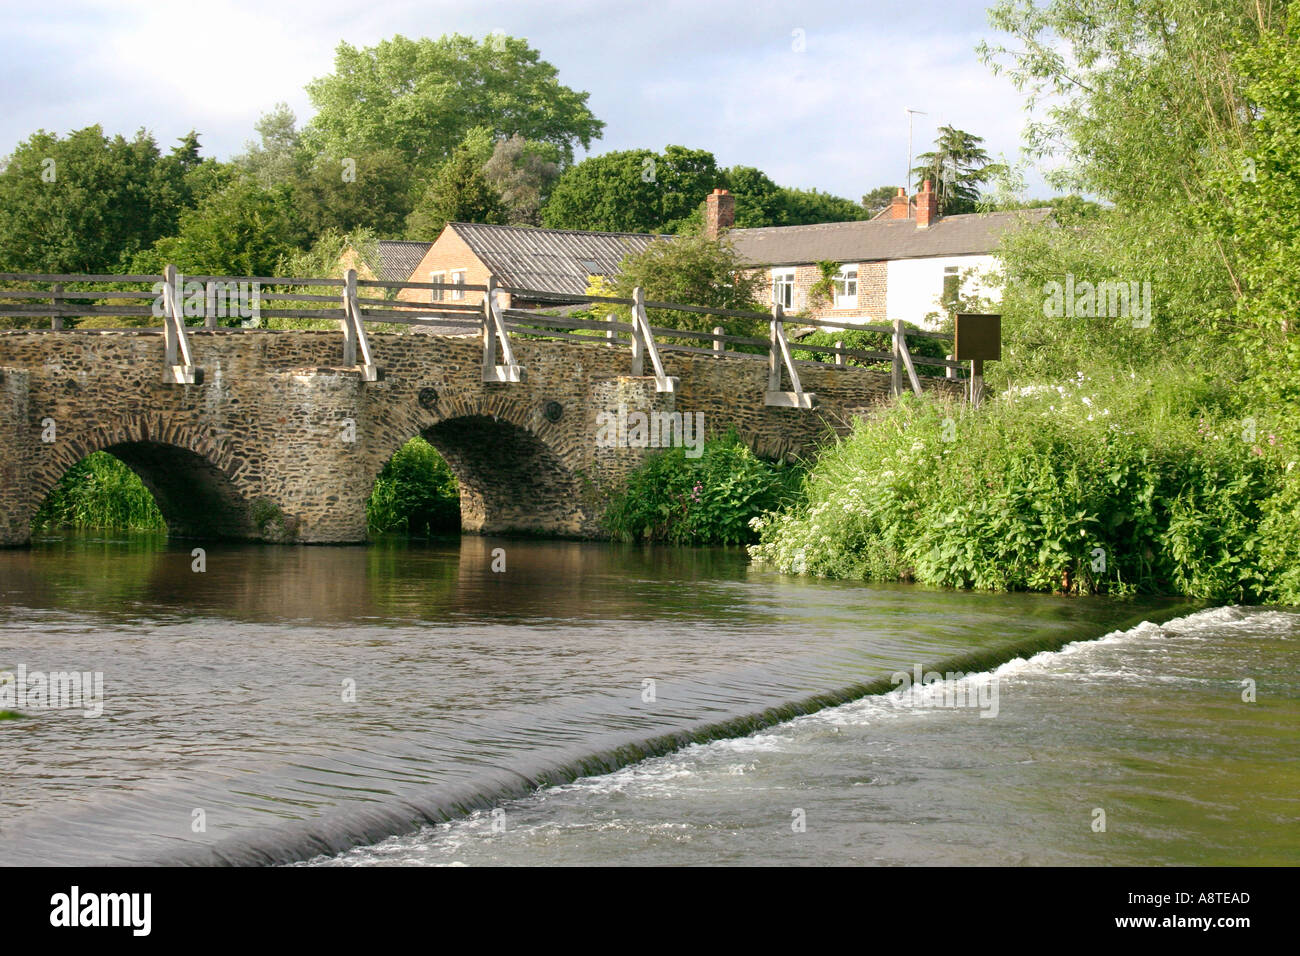 Tilford Bridge Farnham Surrey England UK - Stock Image